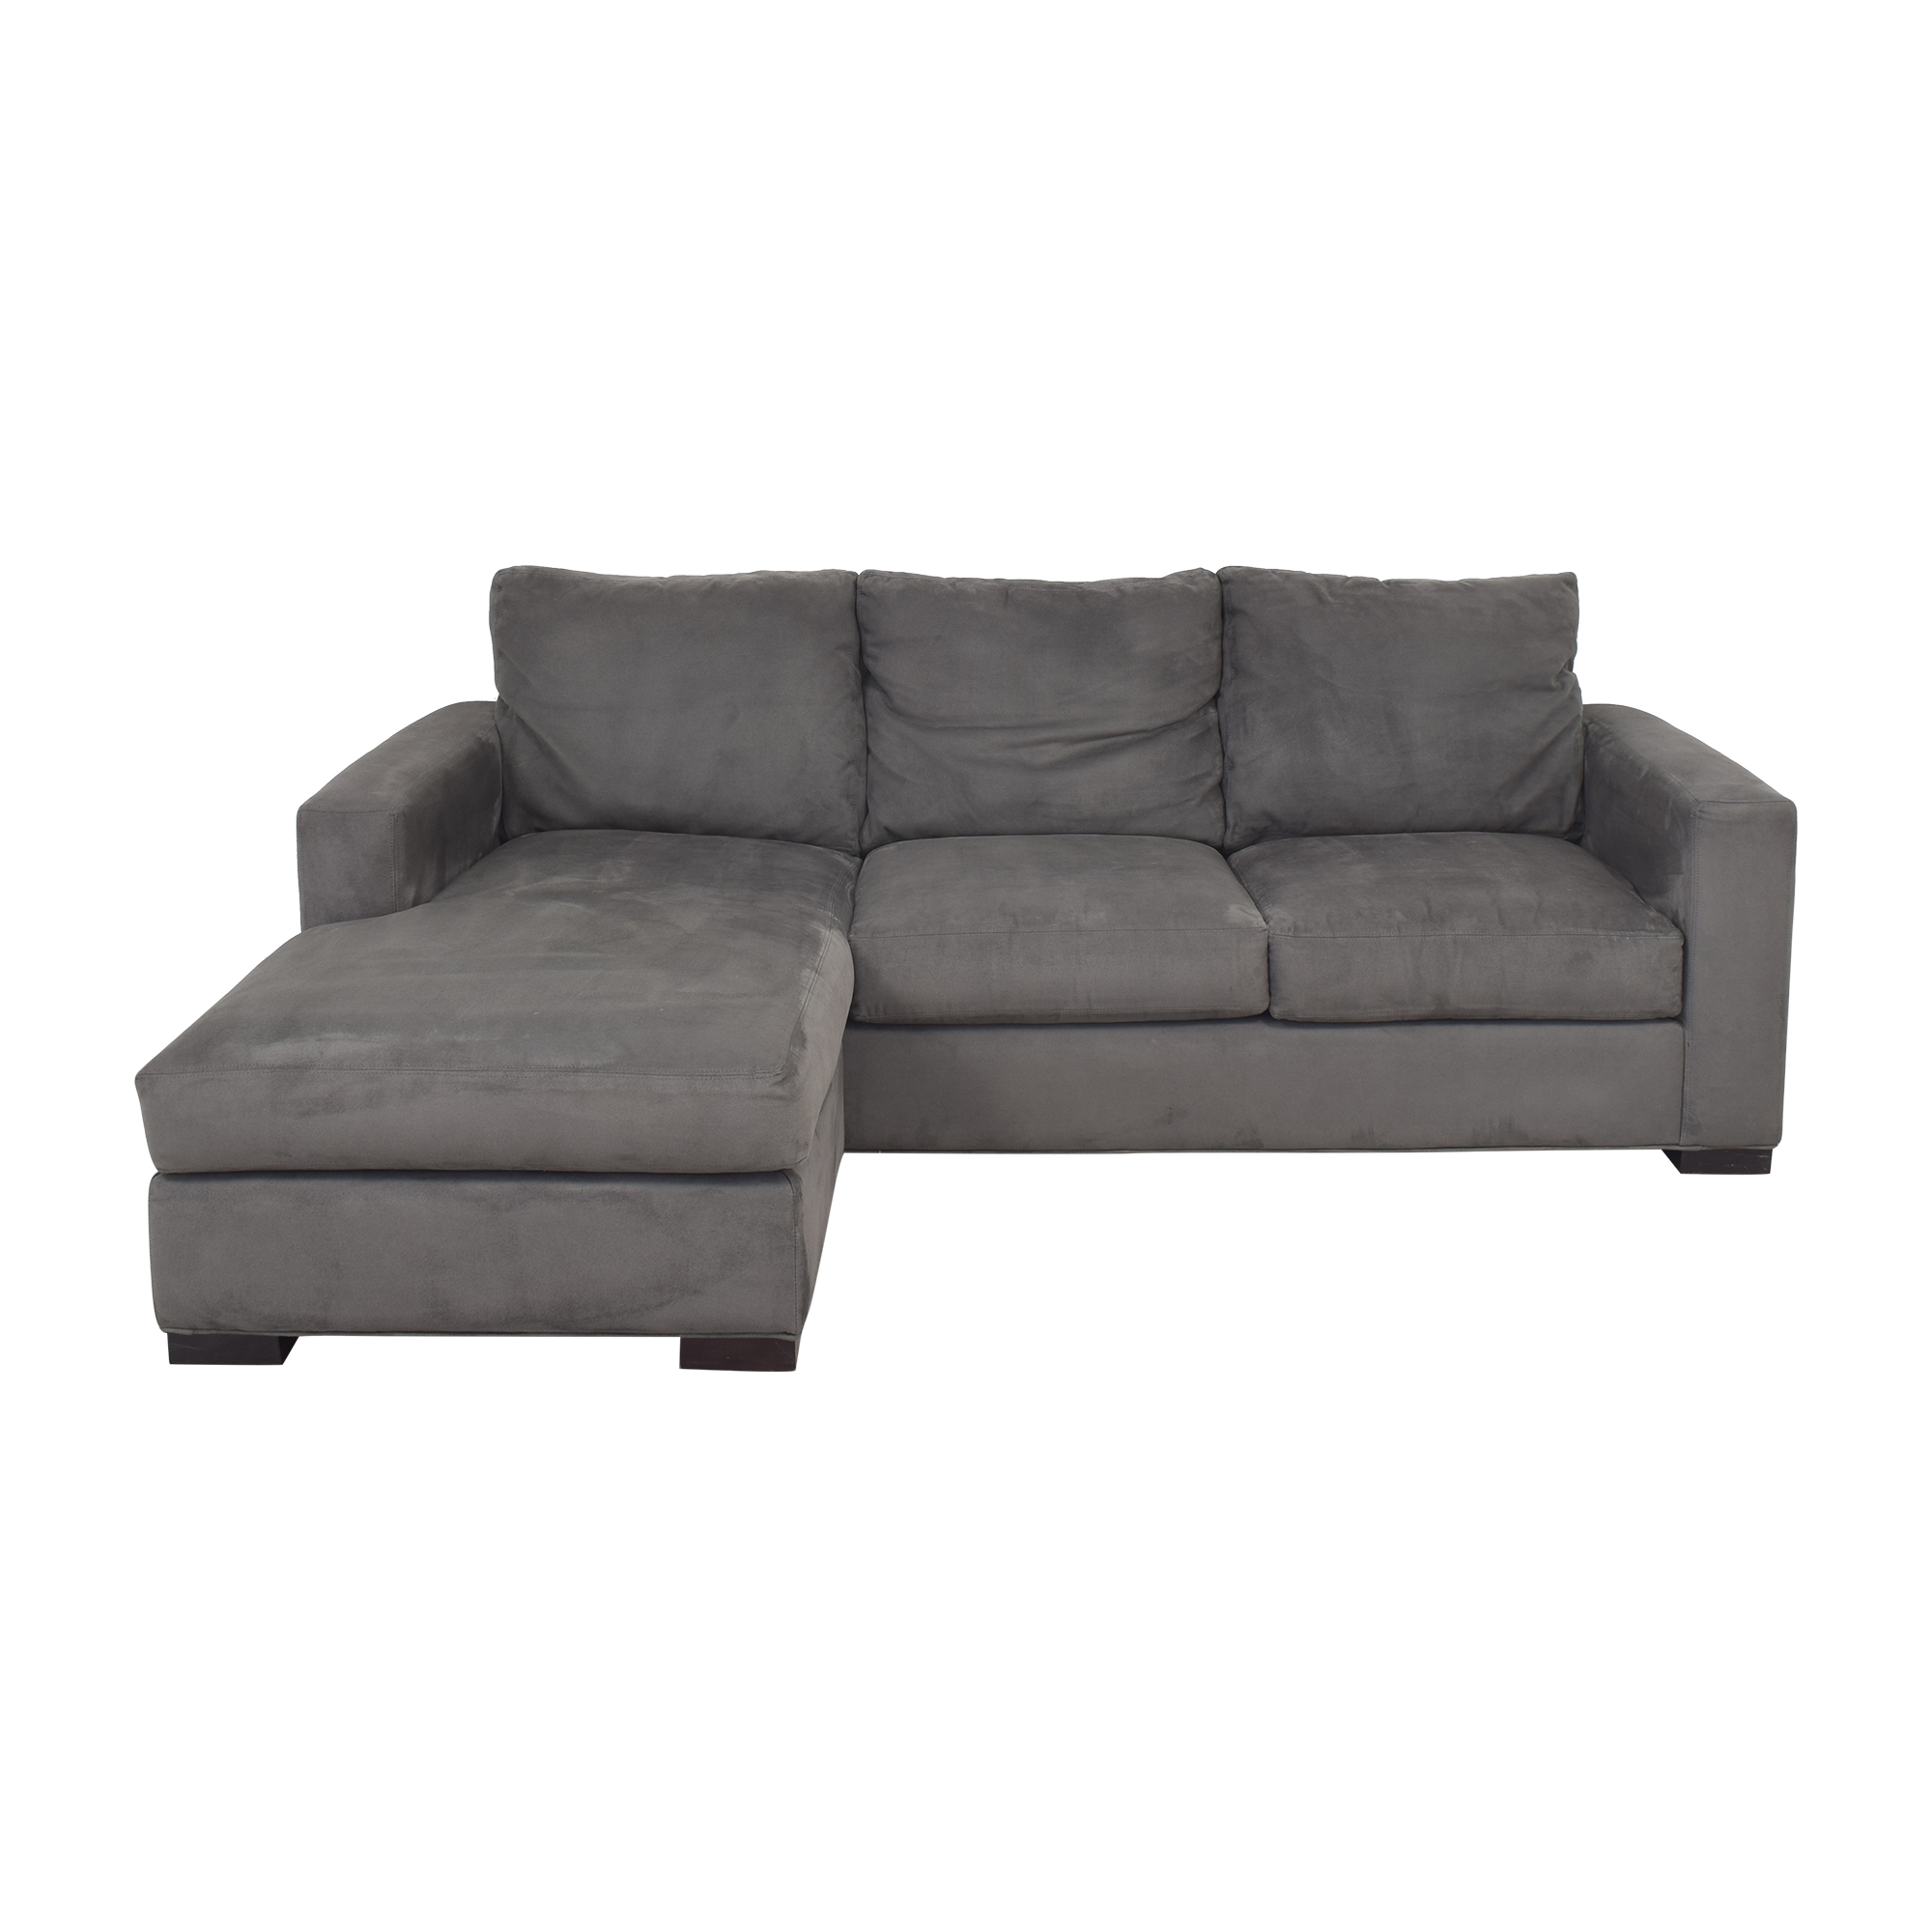 Room & Board Room & Board Metro Chaise Sectional Sofa price